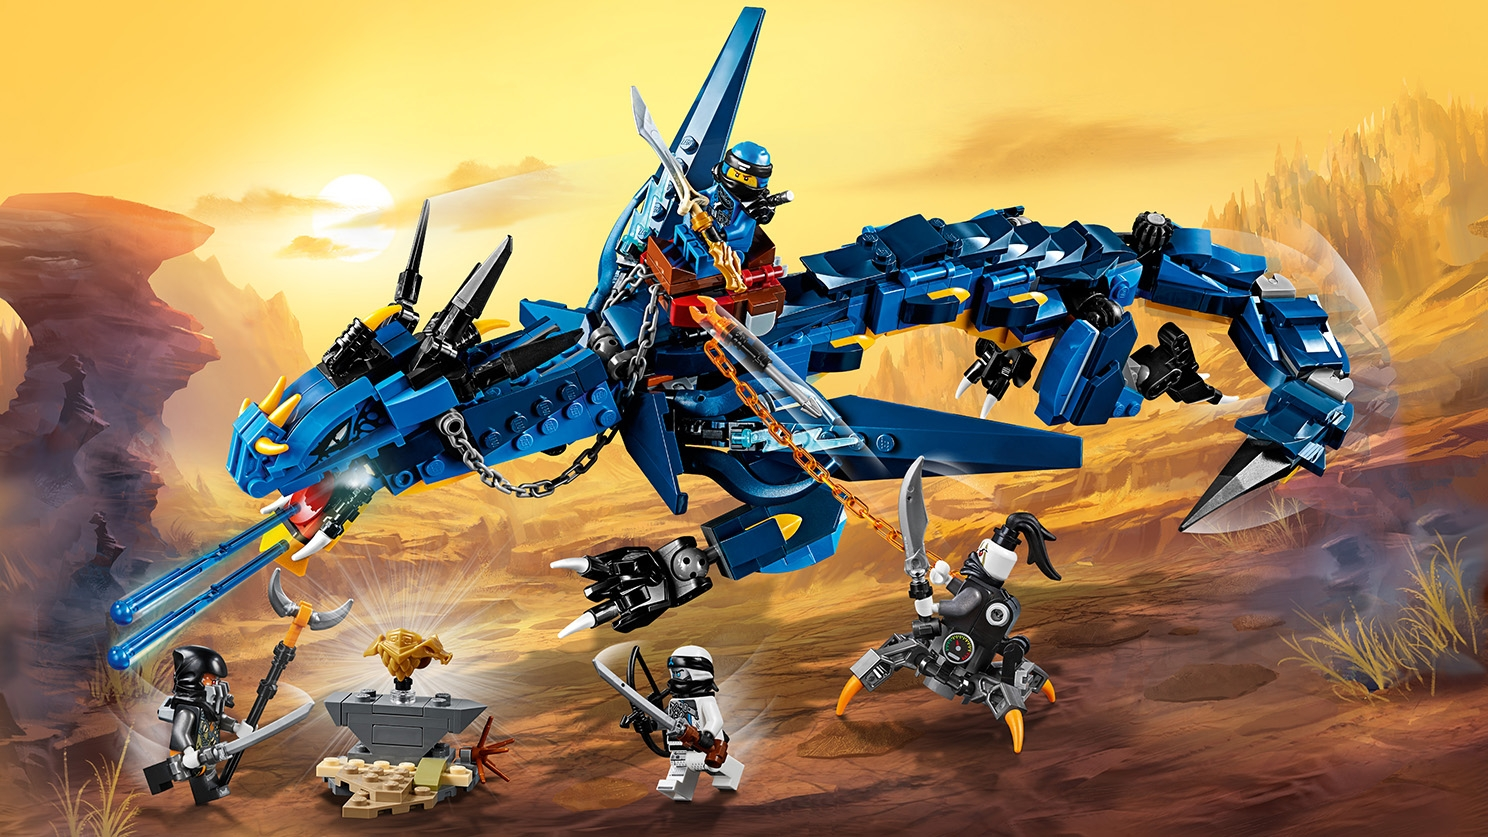 LEGO Ninjago - 70652 Stormbringer - Ride this Lightning Dragon with Jay and fire lightning bolts at the evil guys Daddy No Legs and Muzzle.